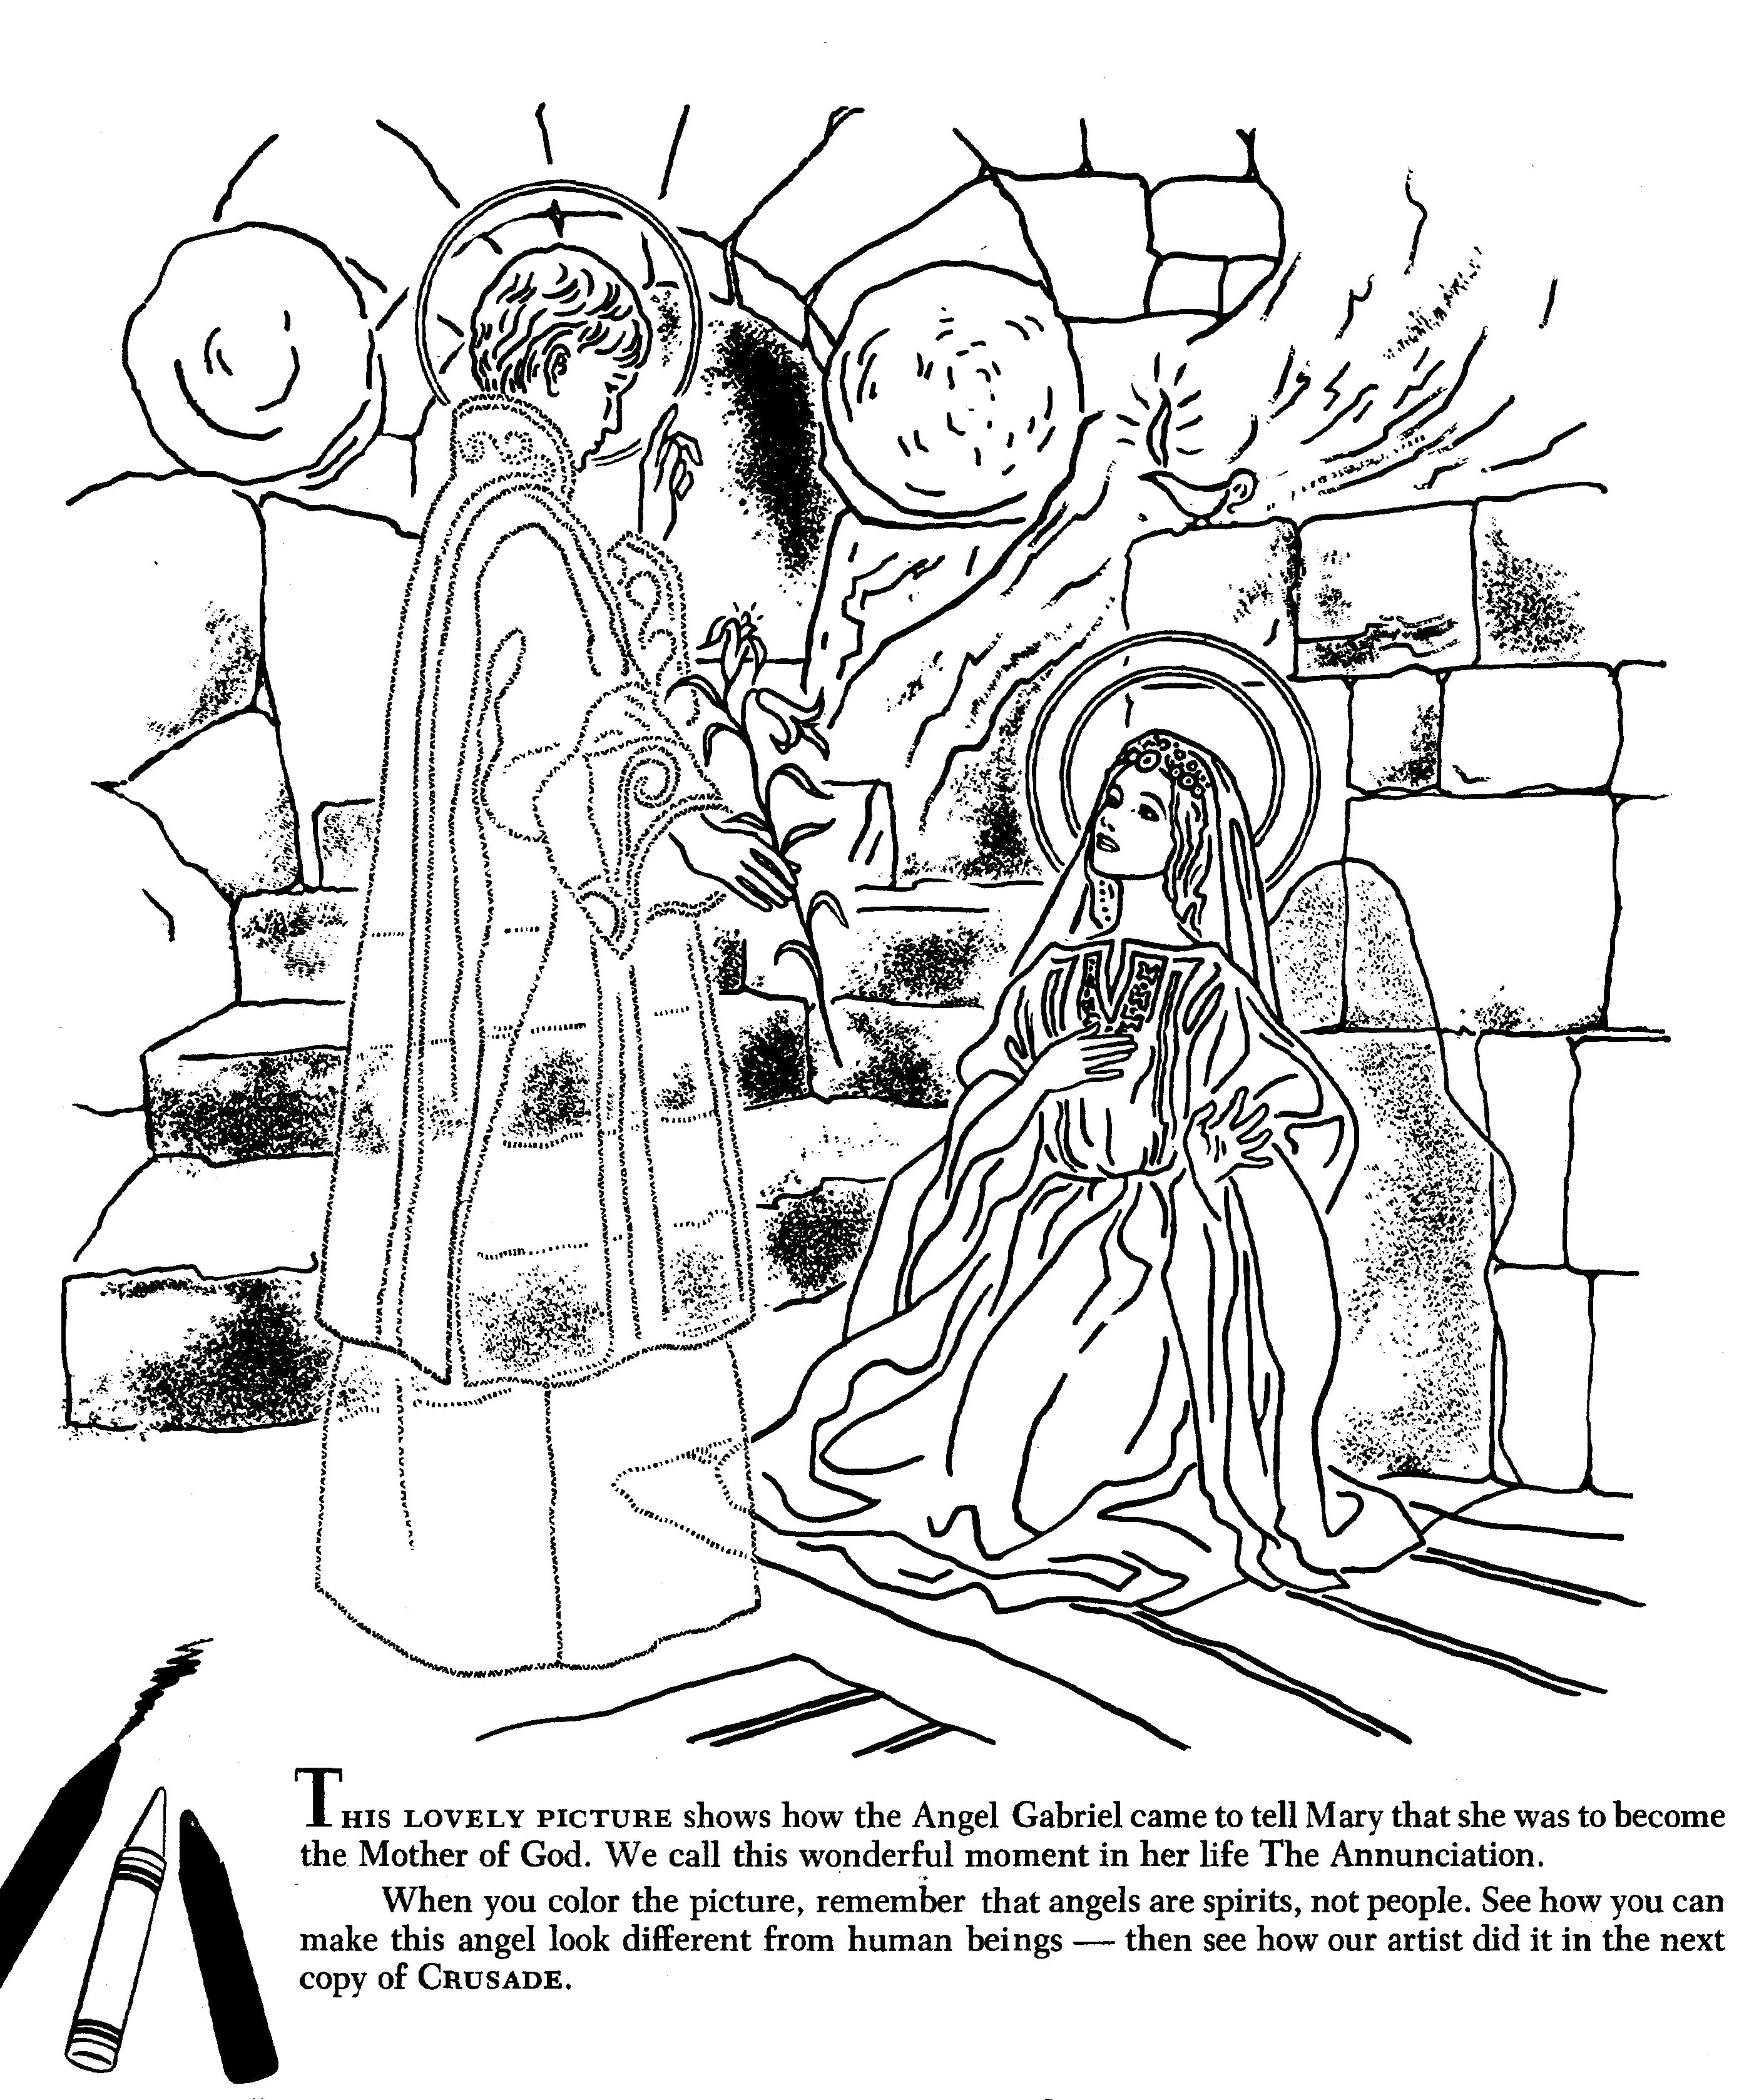 Angel Gabriel Tells Mary She Is To Be The Mother Of God